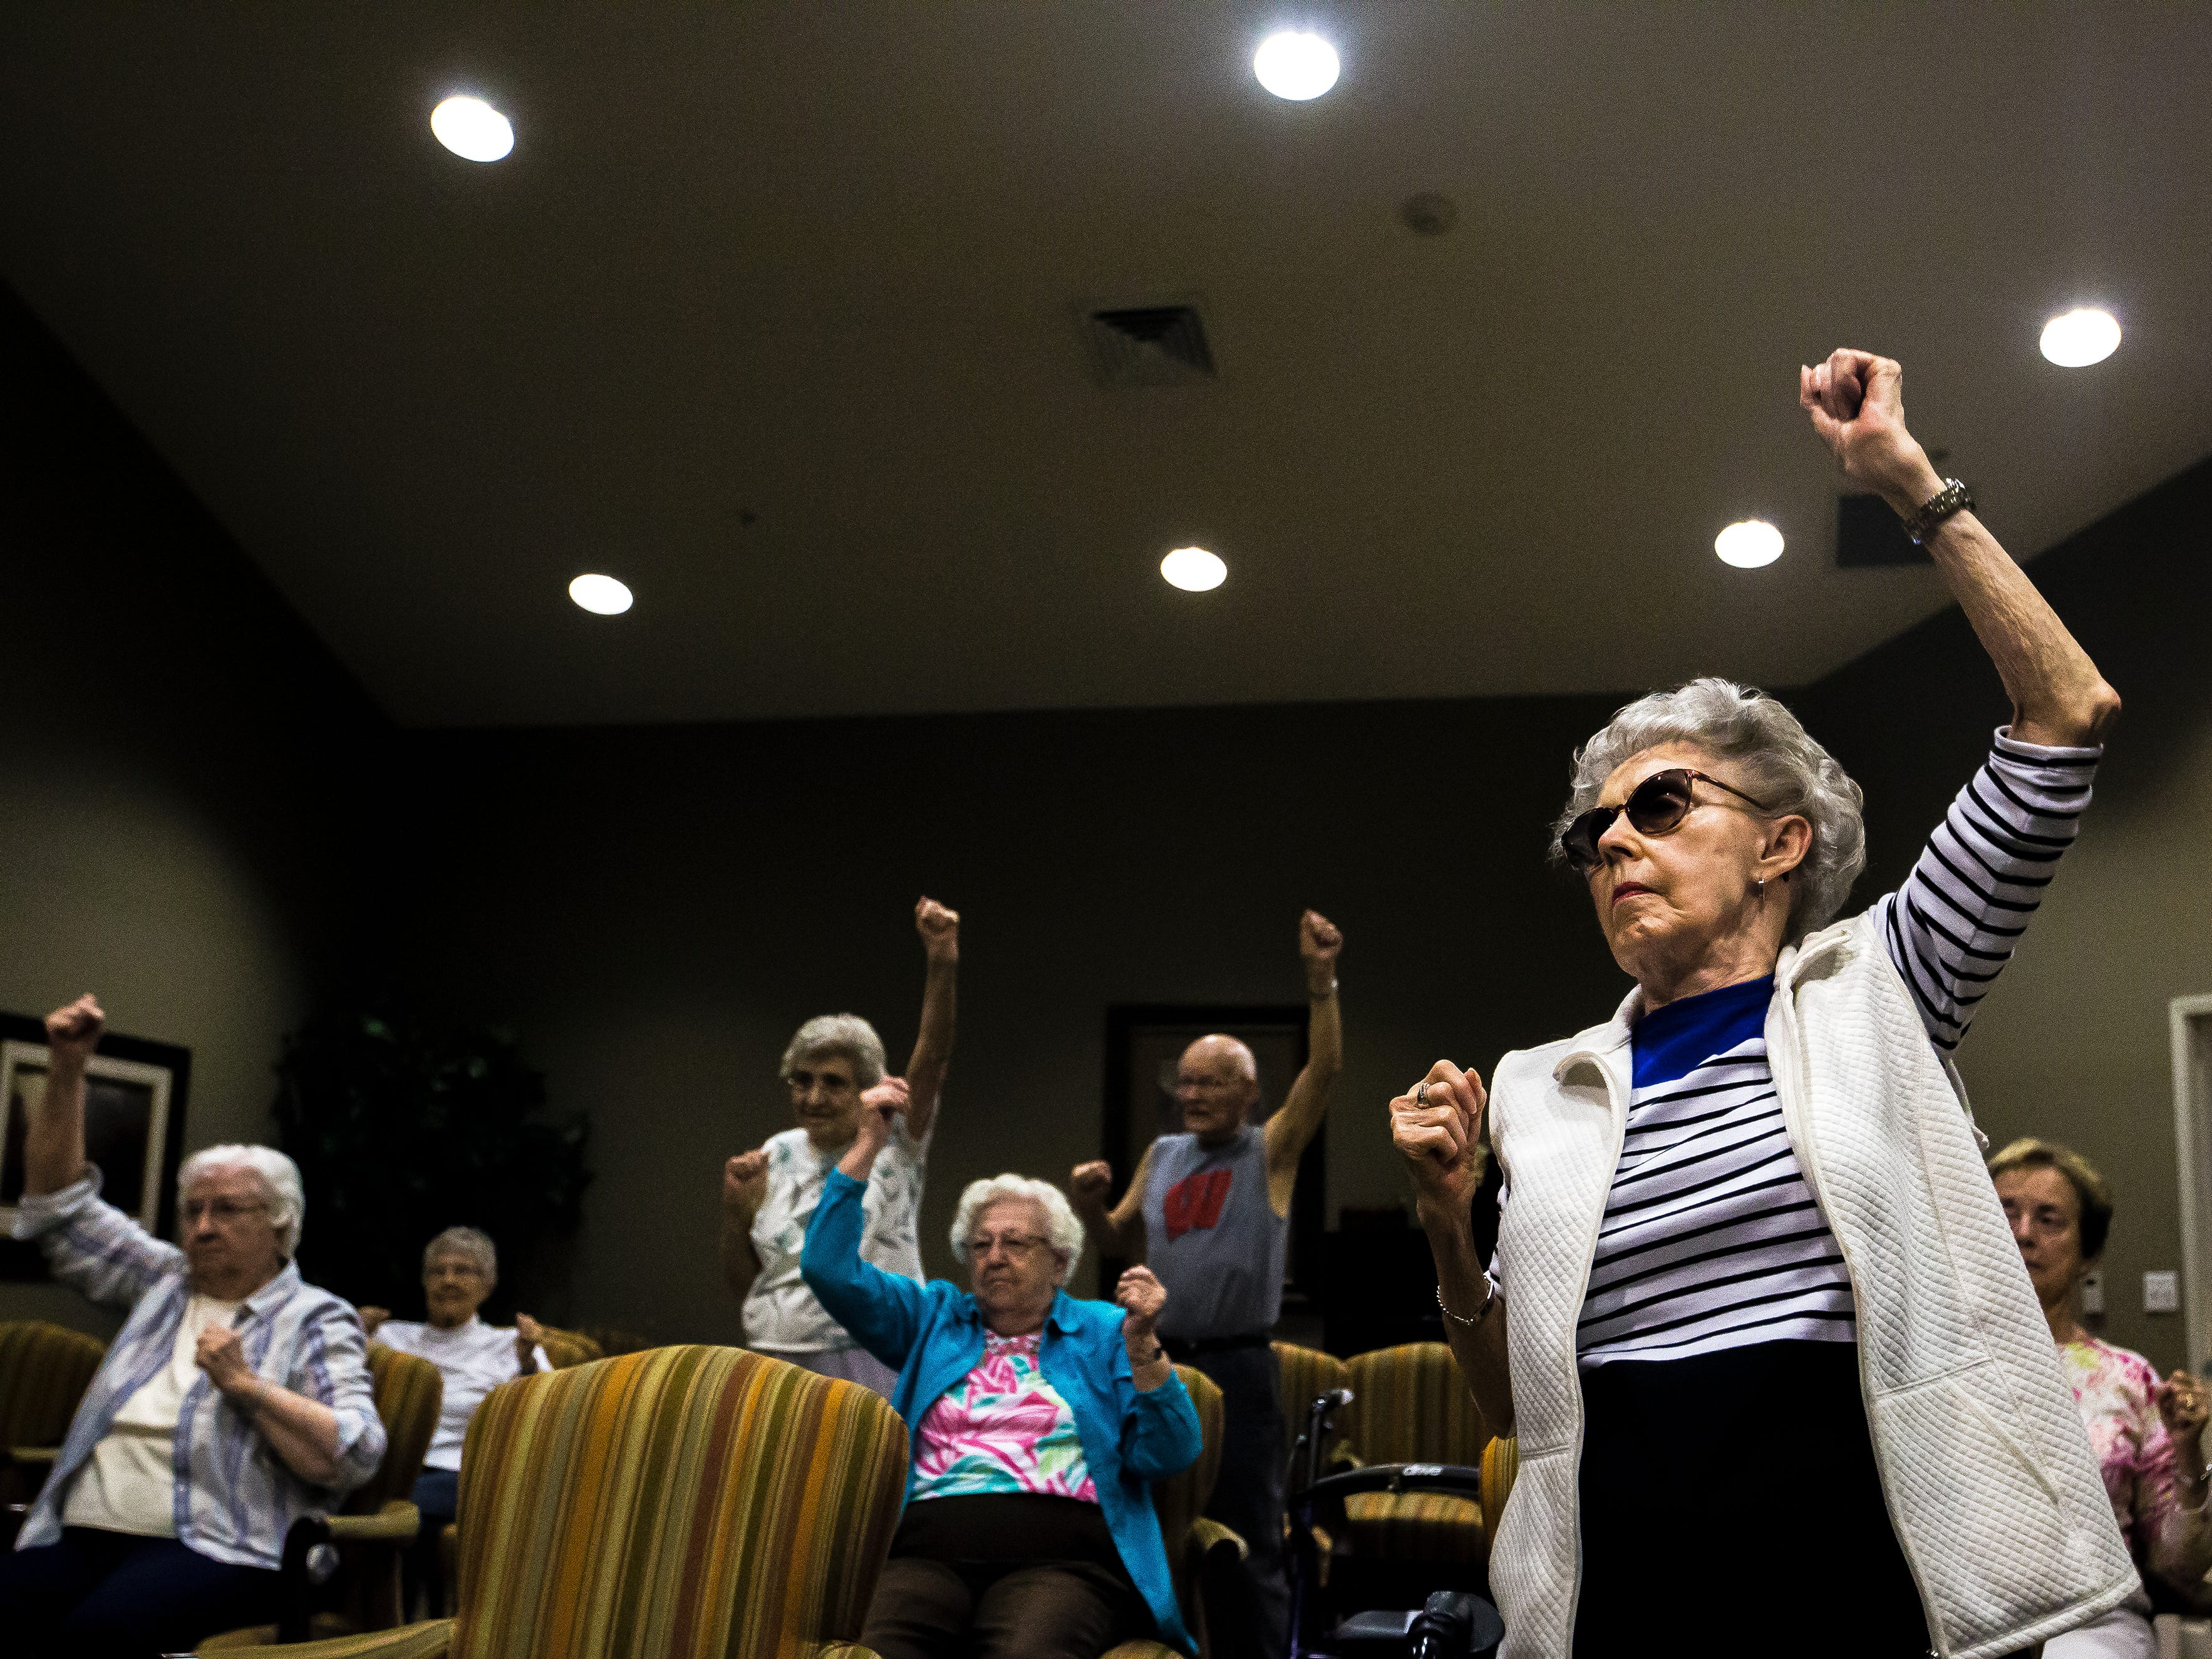 """Doris Roberts, 92, right, participates in a fitness class led by volunteer Betty Lou Sweeney for residents of the Brookdale assisted living facility in Stevens Point, Wis., Tuesday, Sept. 18, 2018. """"You make us better. I wish I had you 30 years ago,"""" Roberts said to Sweeney before the class."""